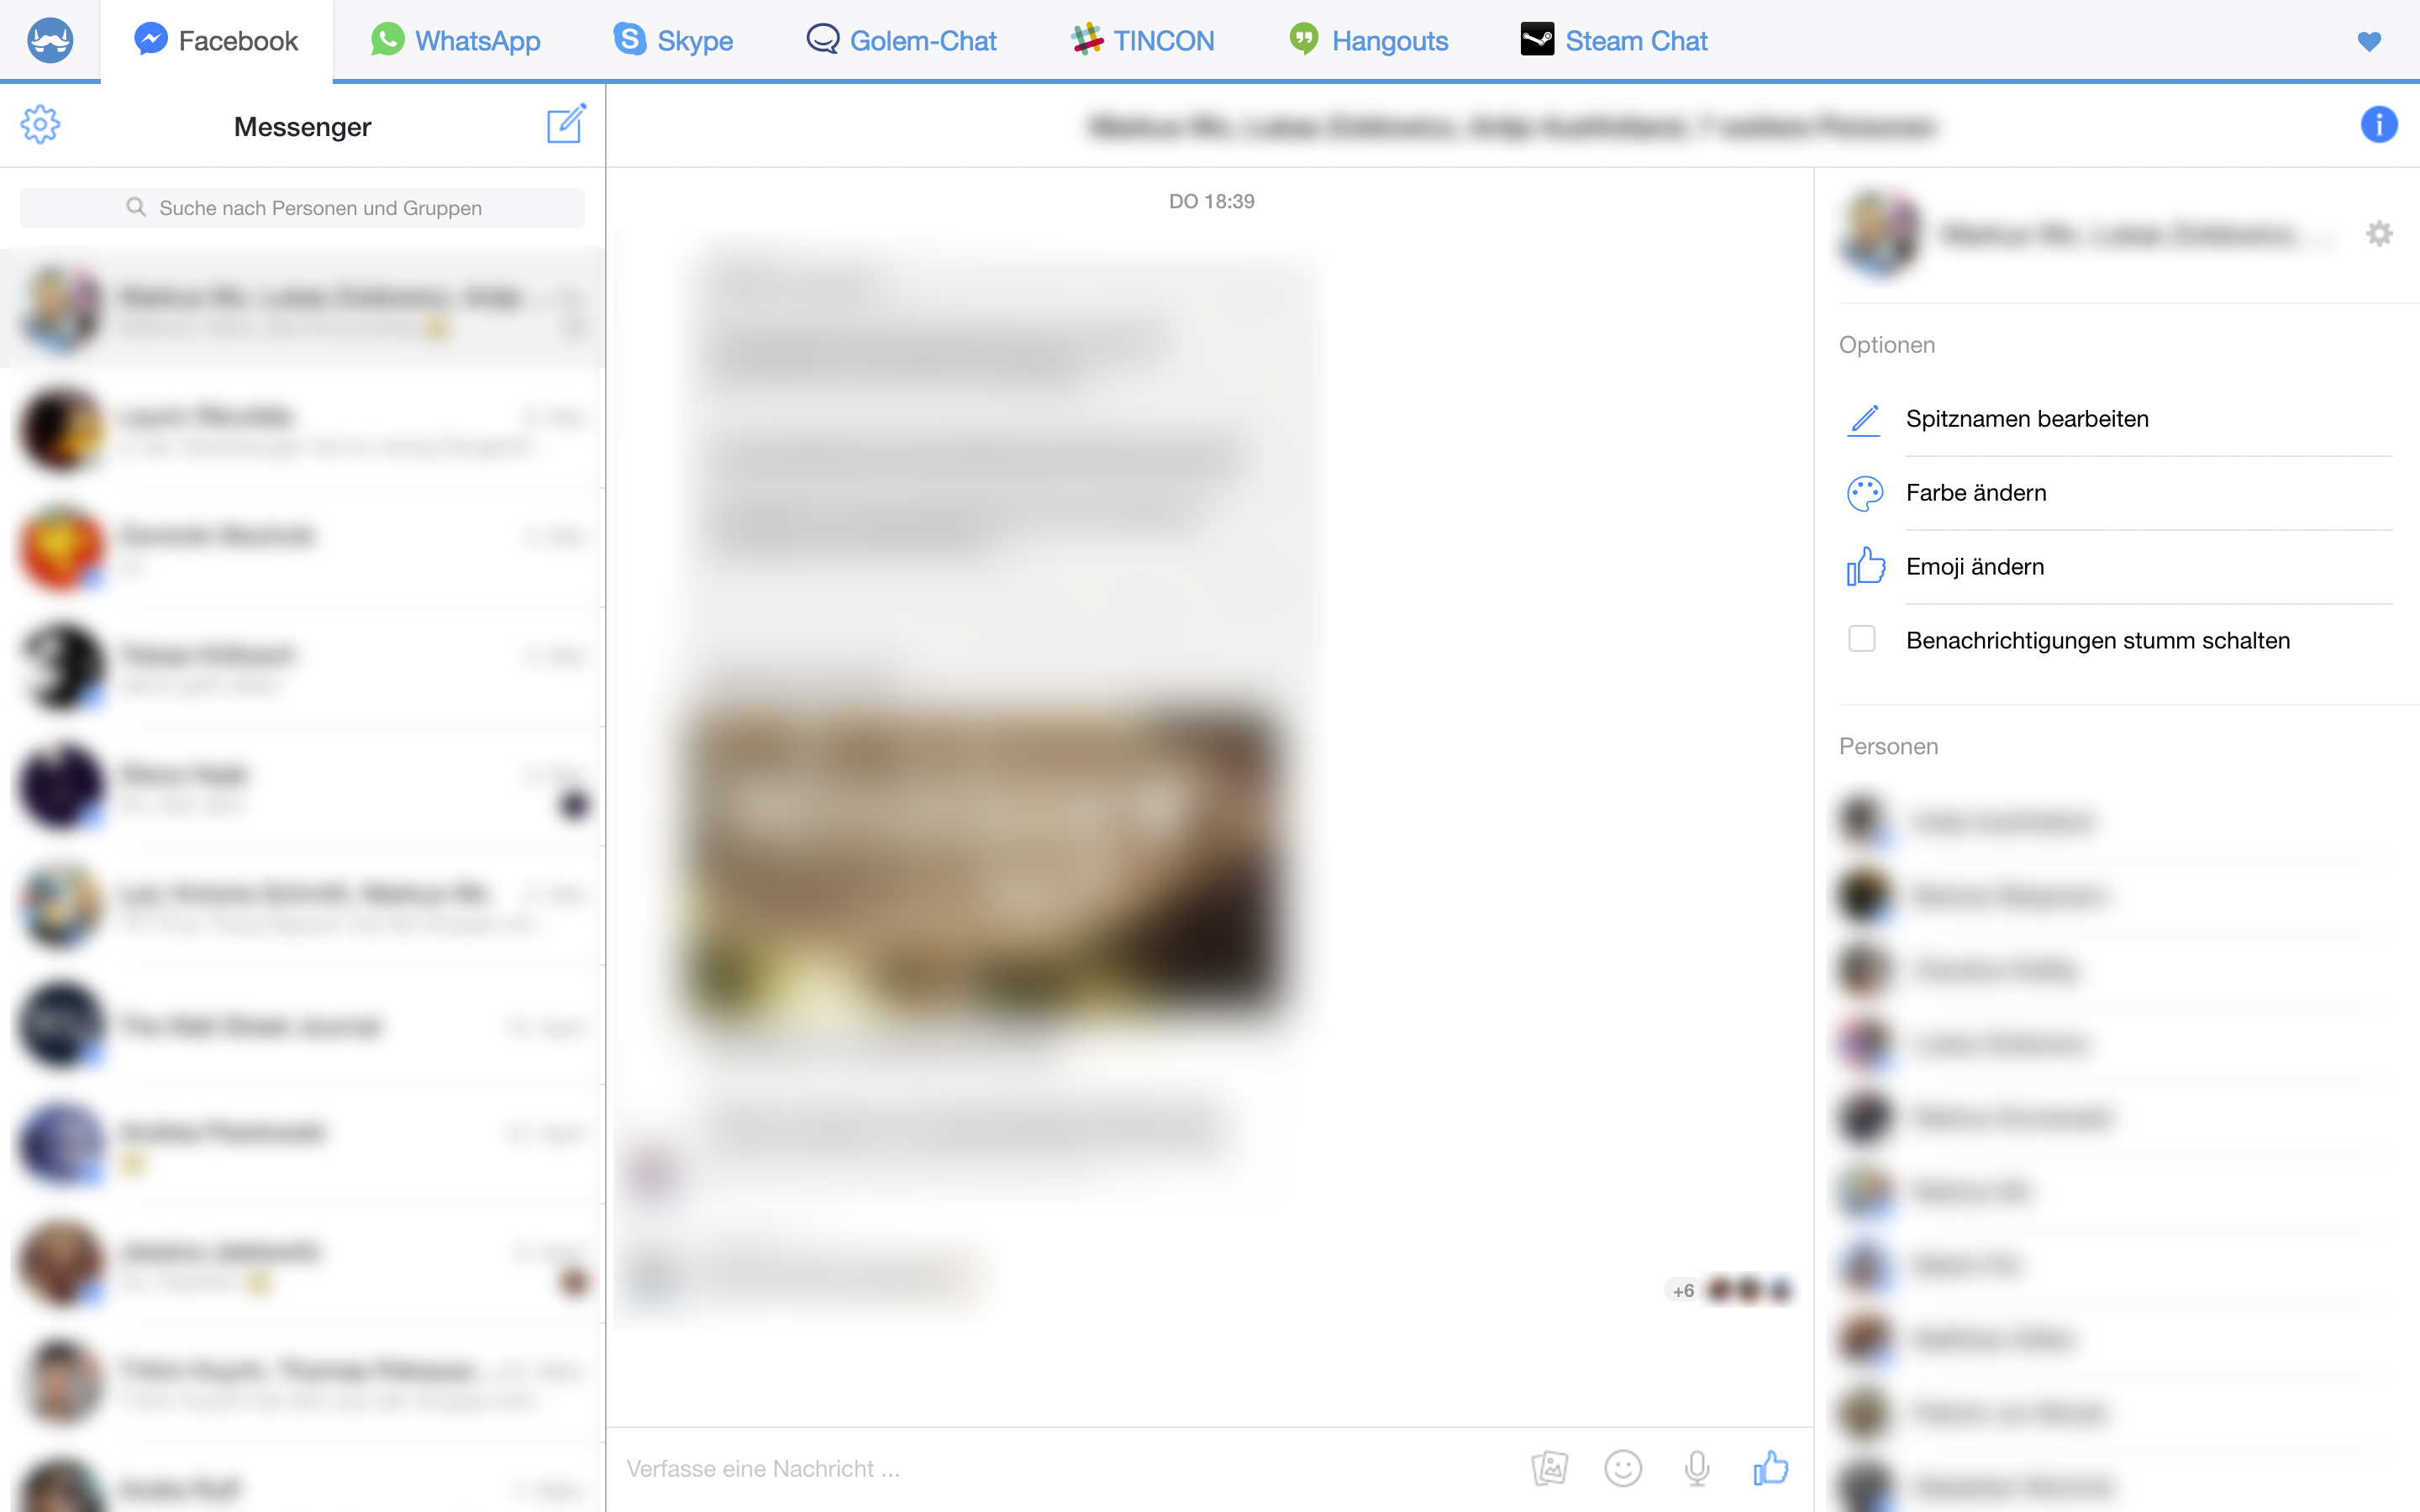 Messenger-Apps: Franz, das Kommunikationsgenie - Facebook Messenger im Franz-Messenger (Screenshot: Golem.de)